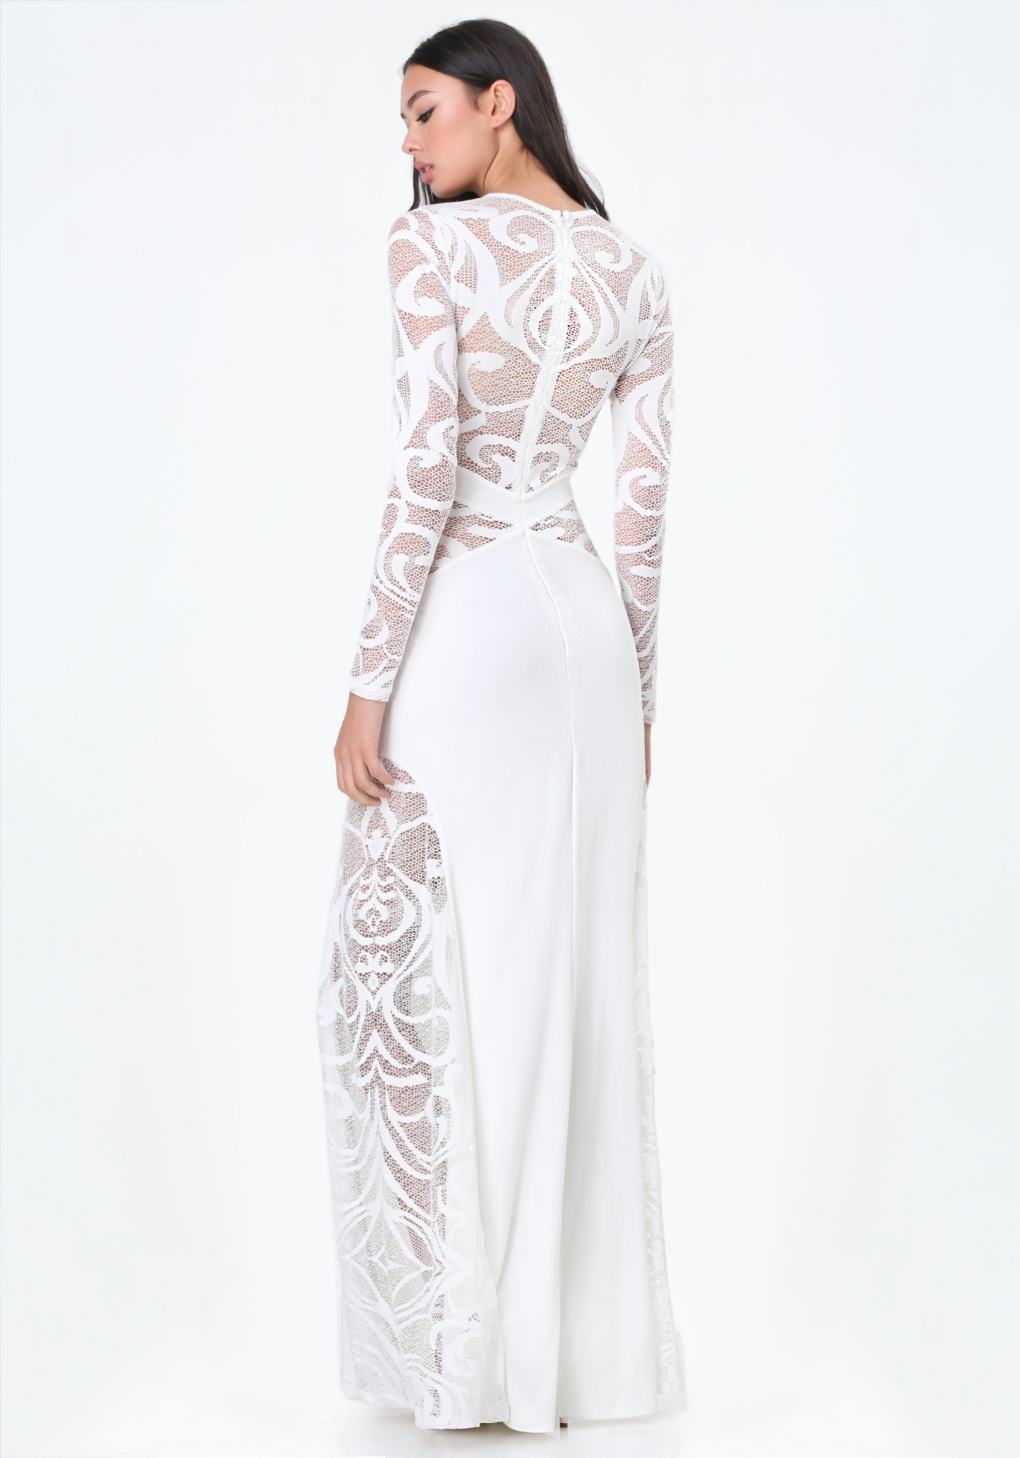 Lyst - Bebe Petite Lace Gown in White